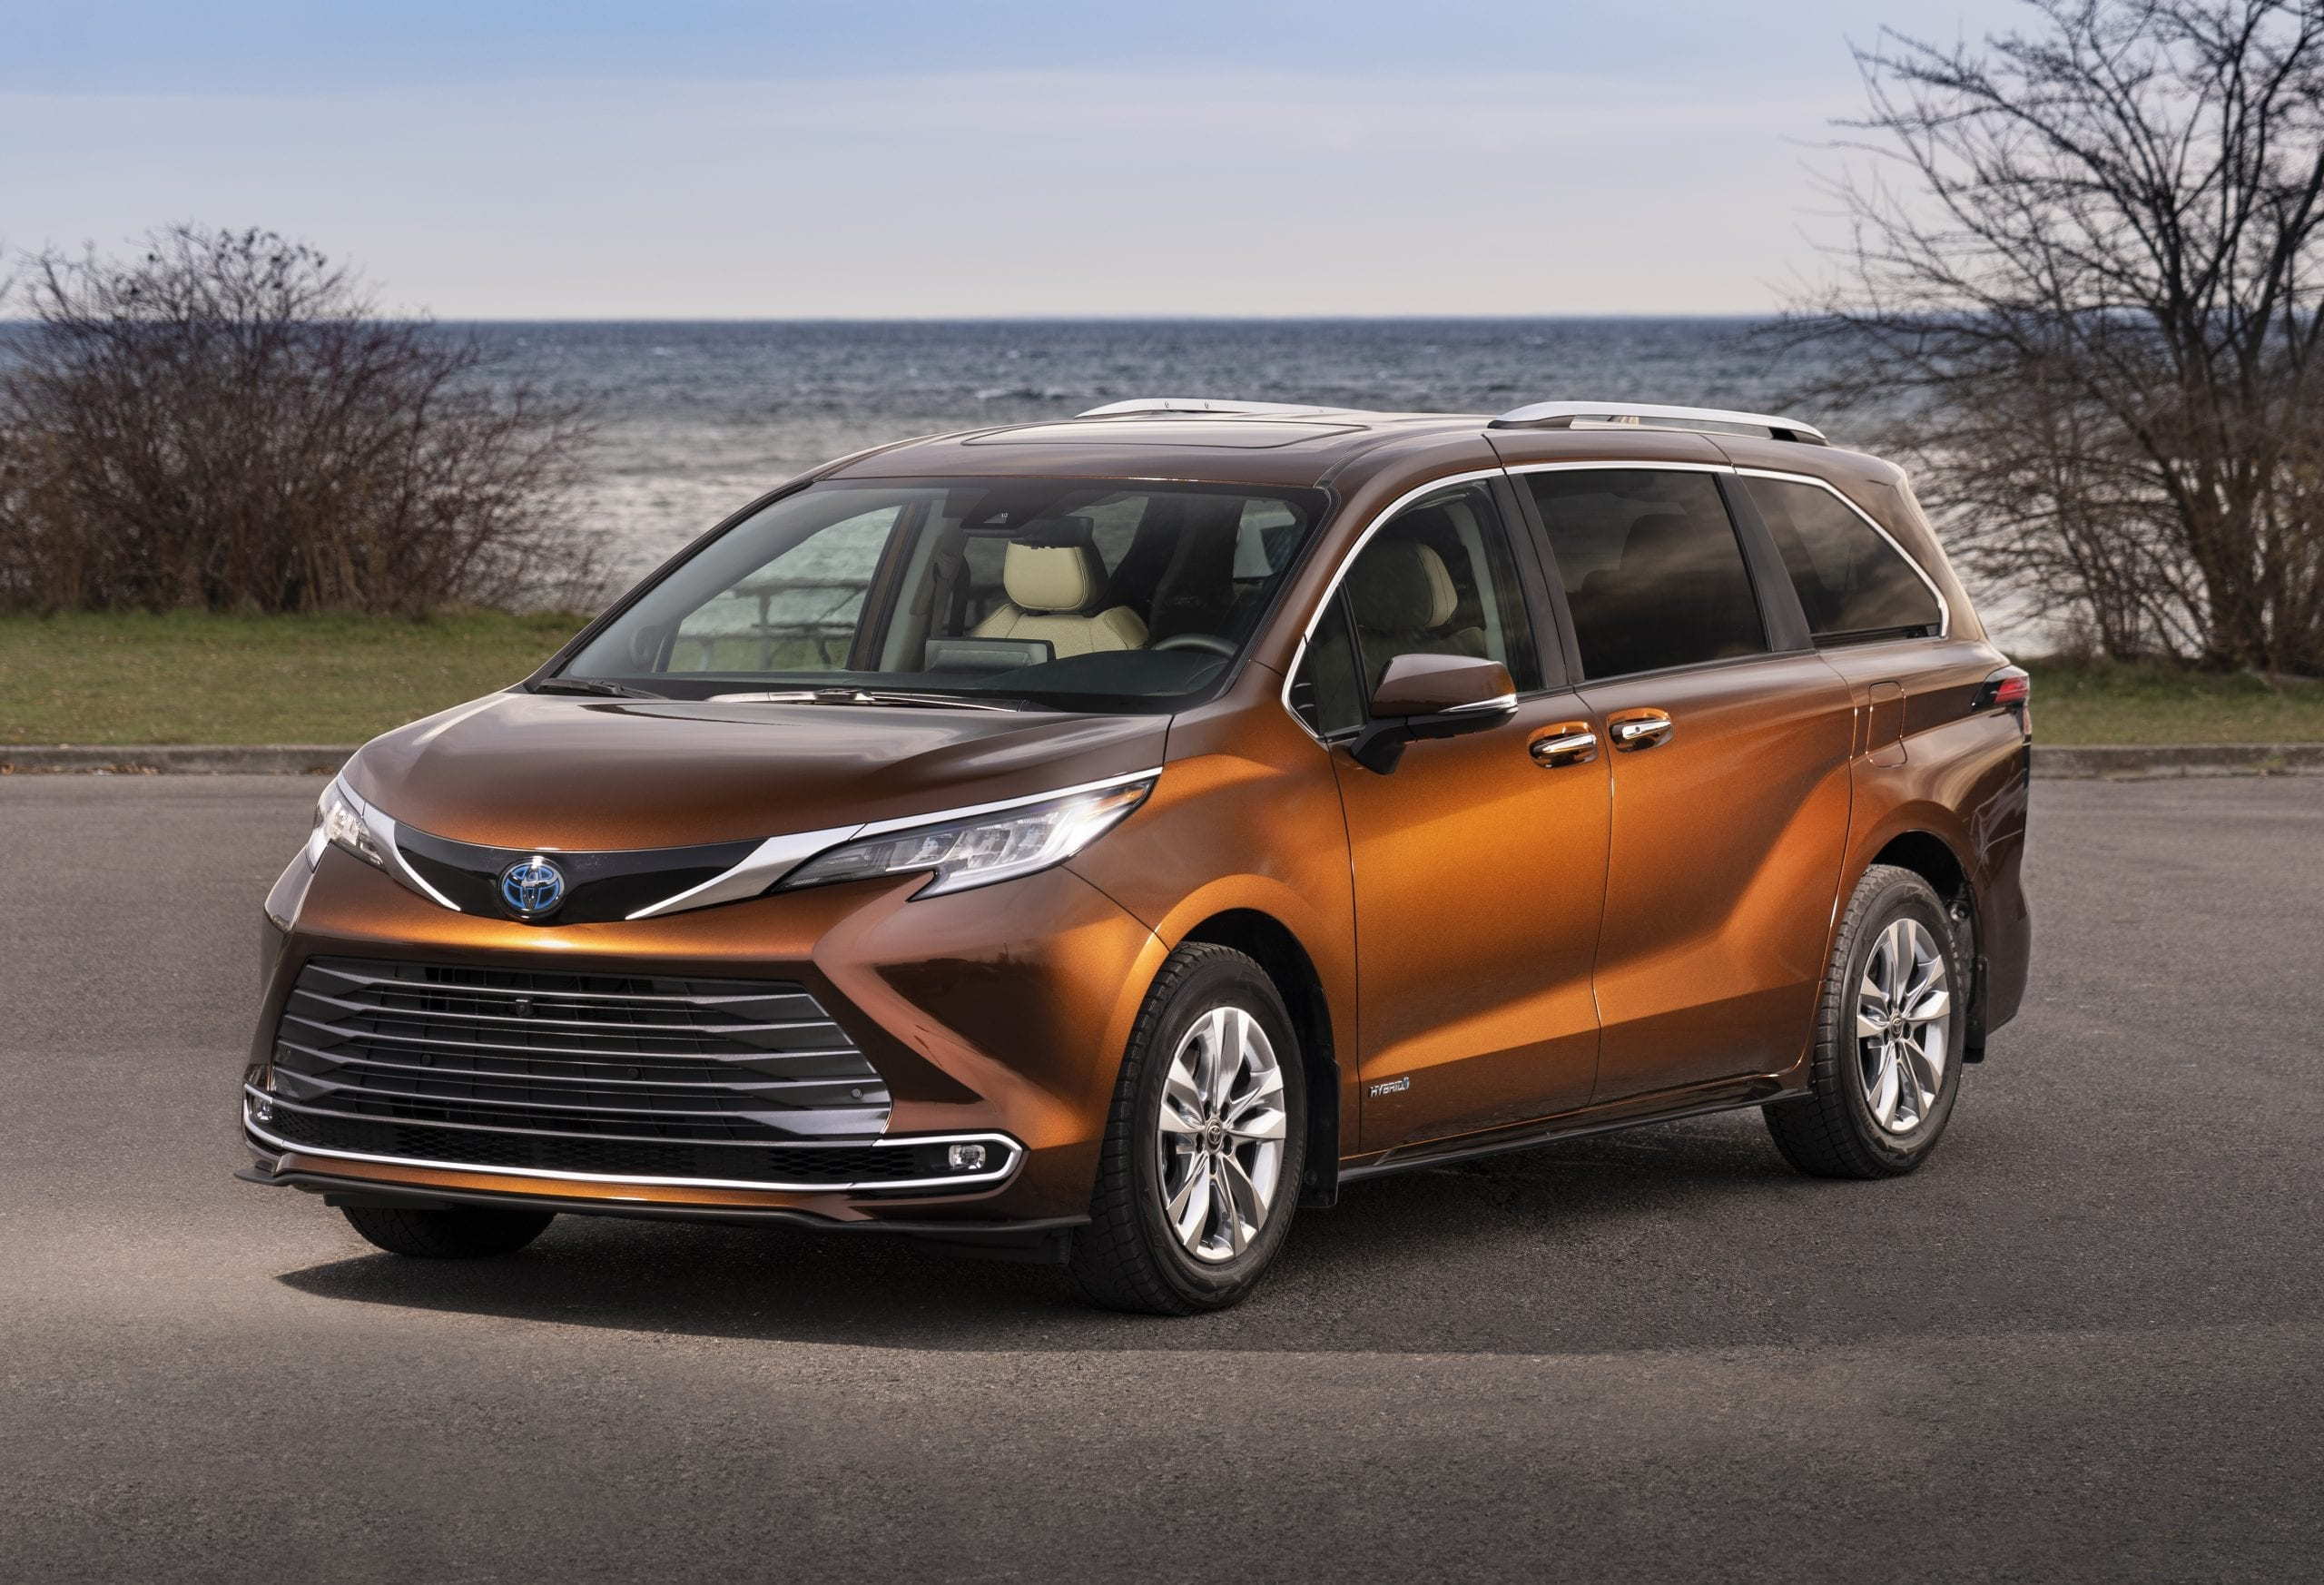 2021 toyota sienna orange side profile outdoor lake